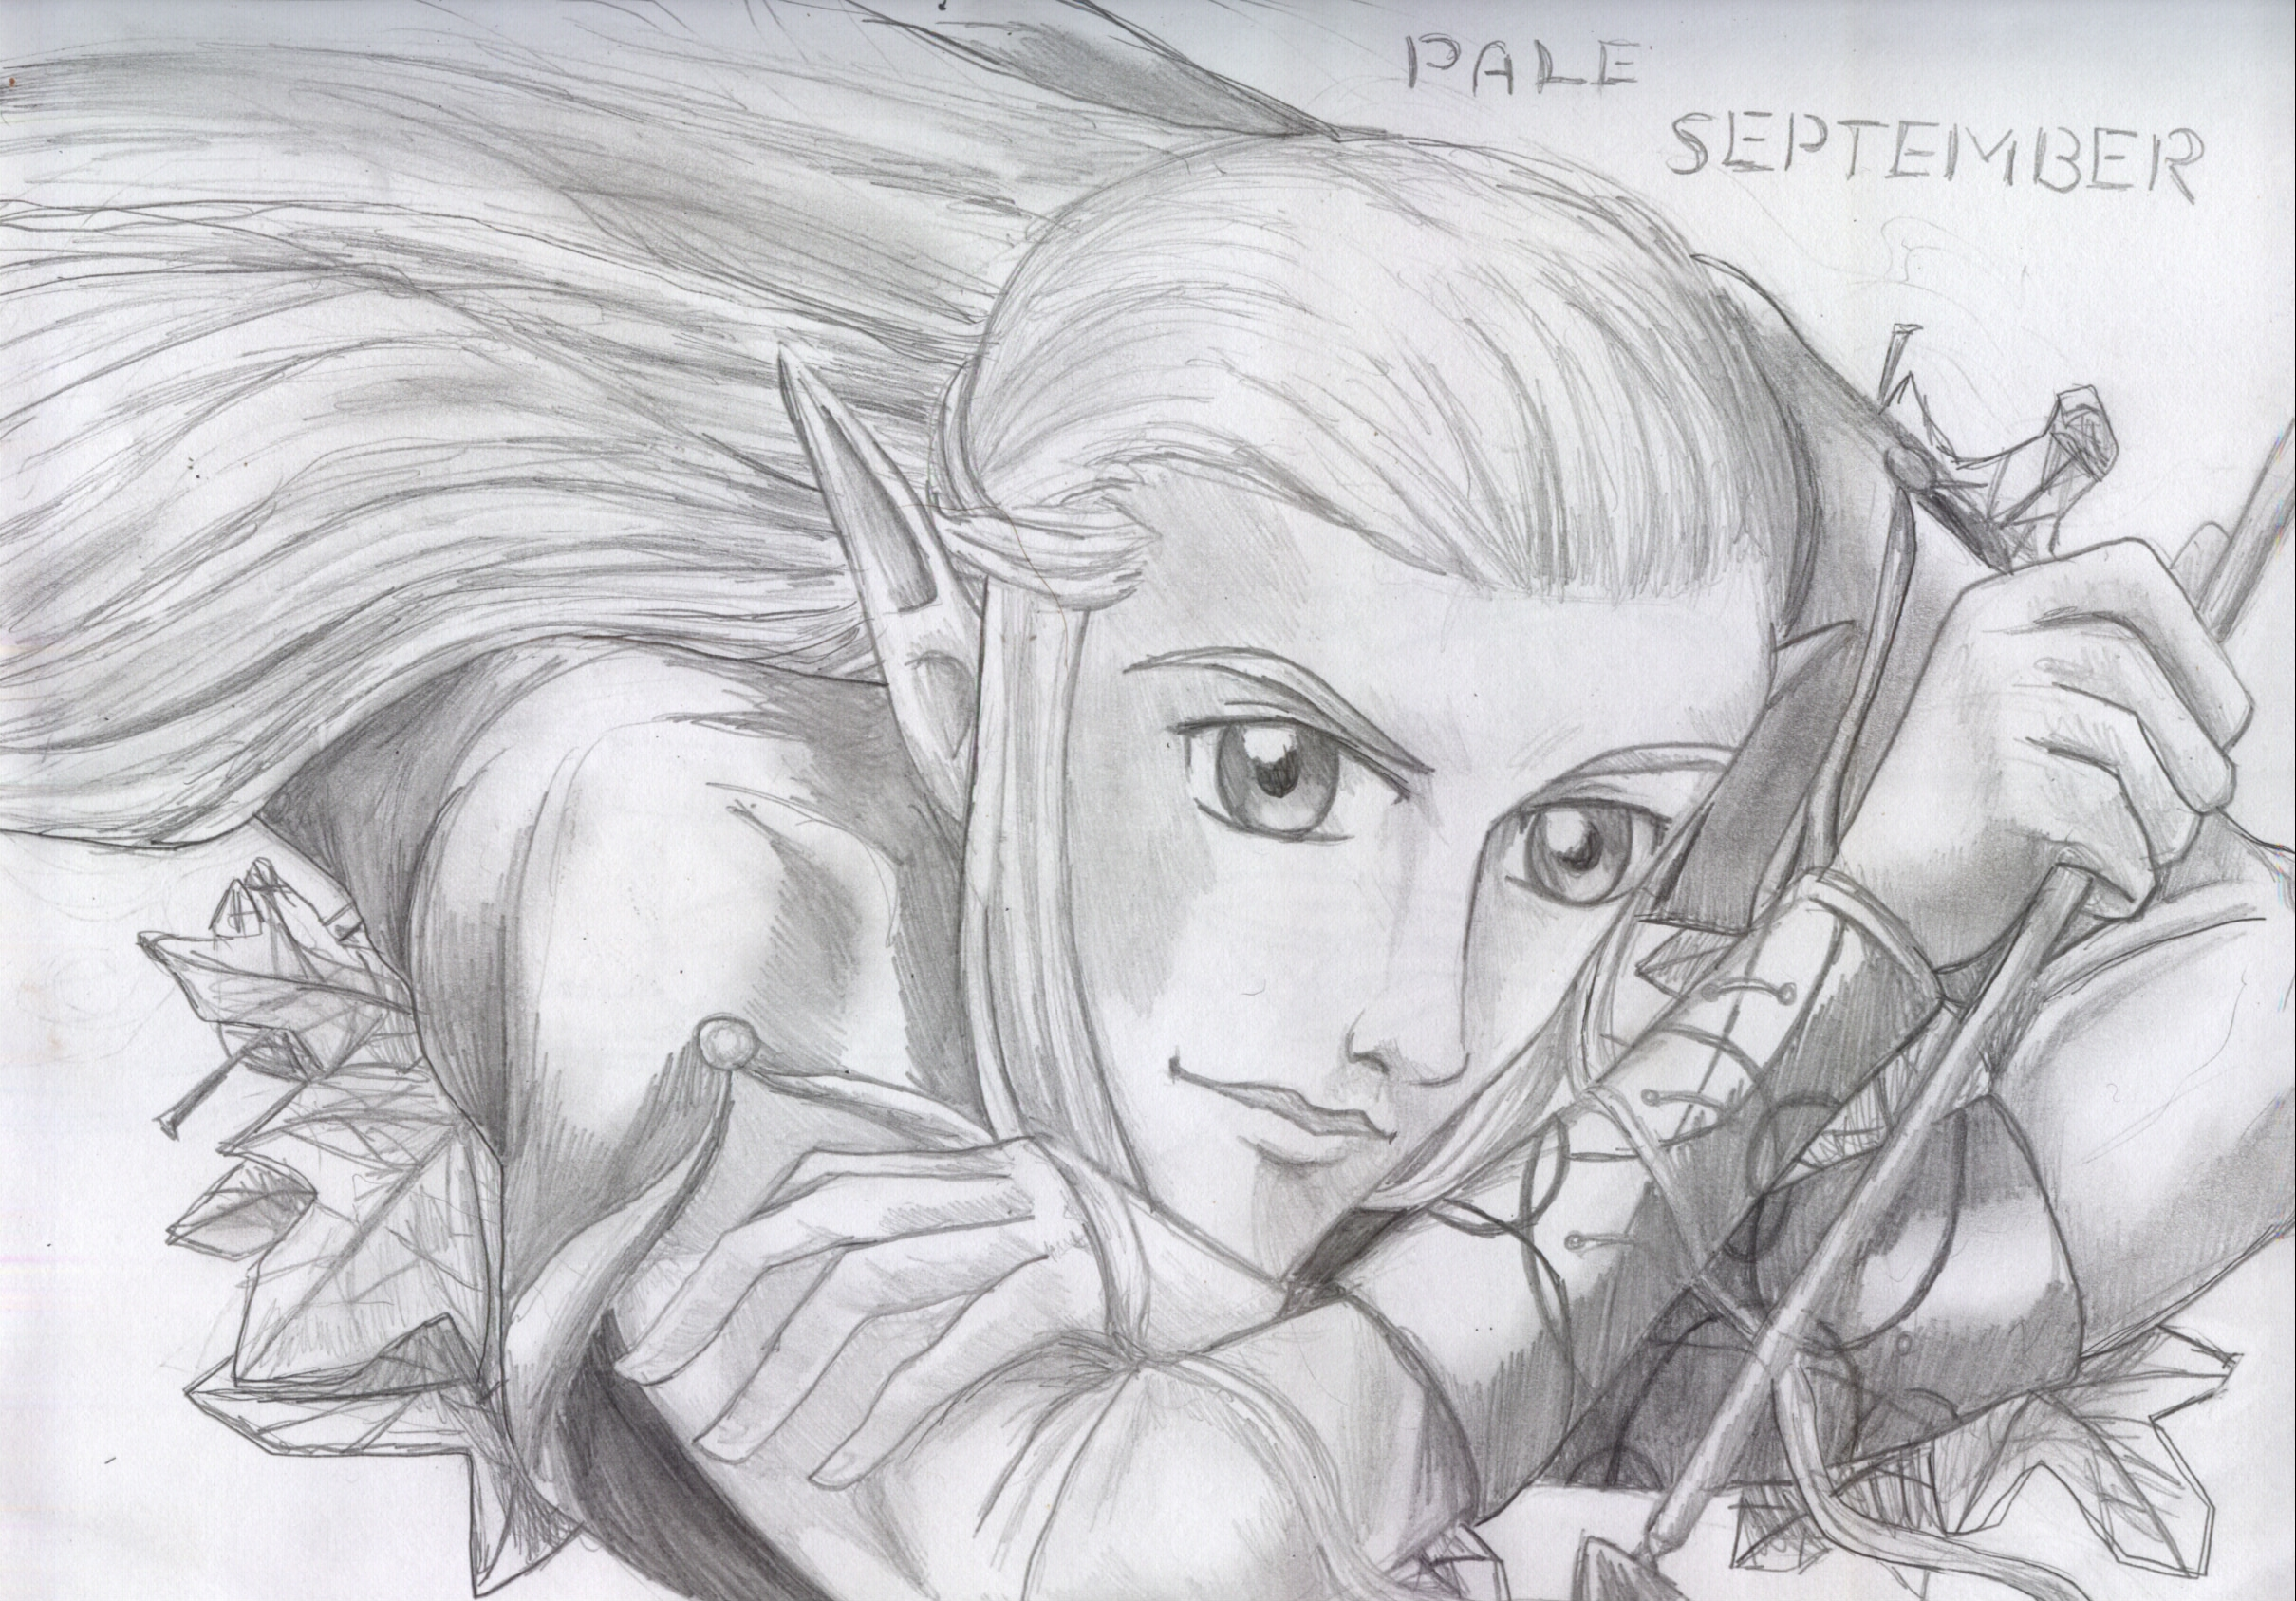 Legolas!  He's so cute and young ^_^  Elfboy!